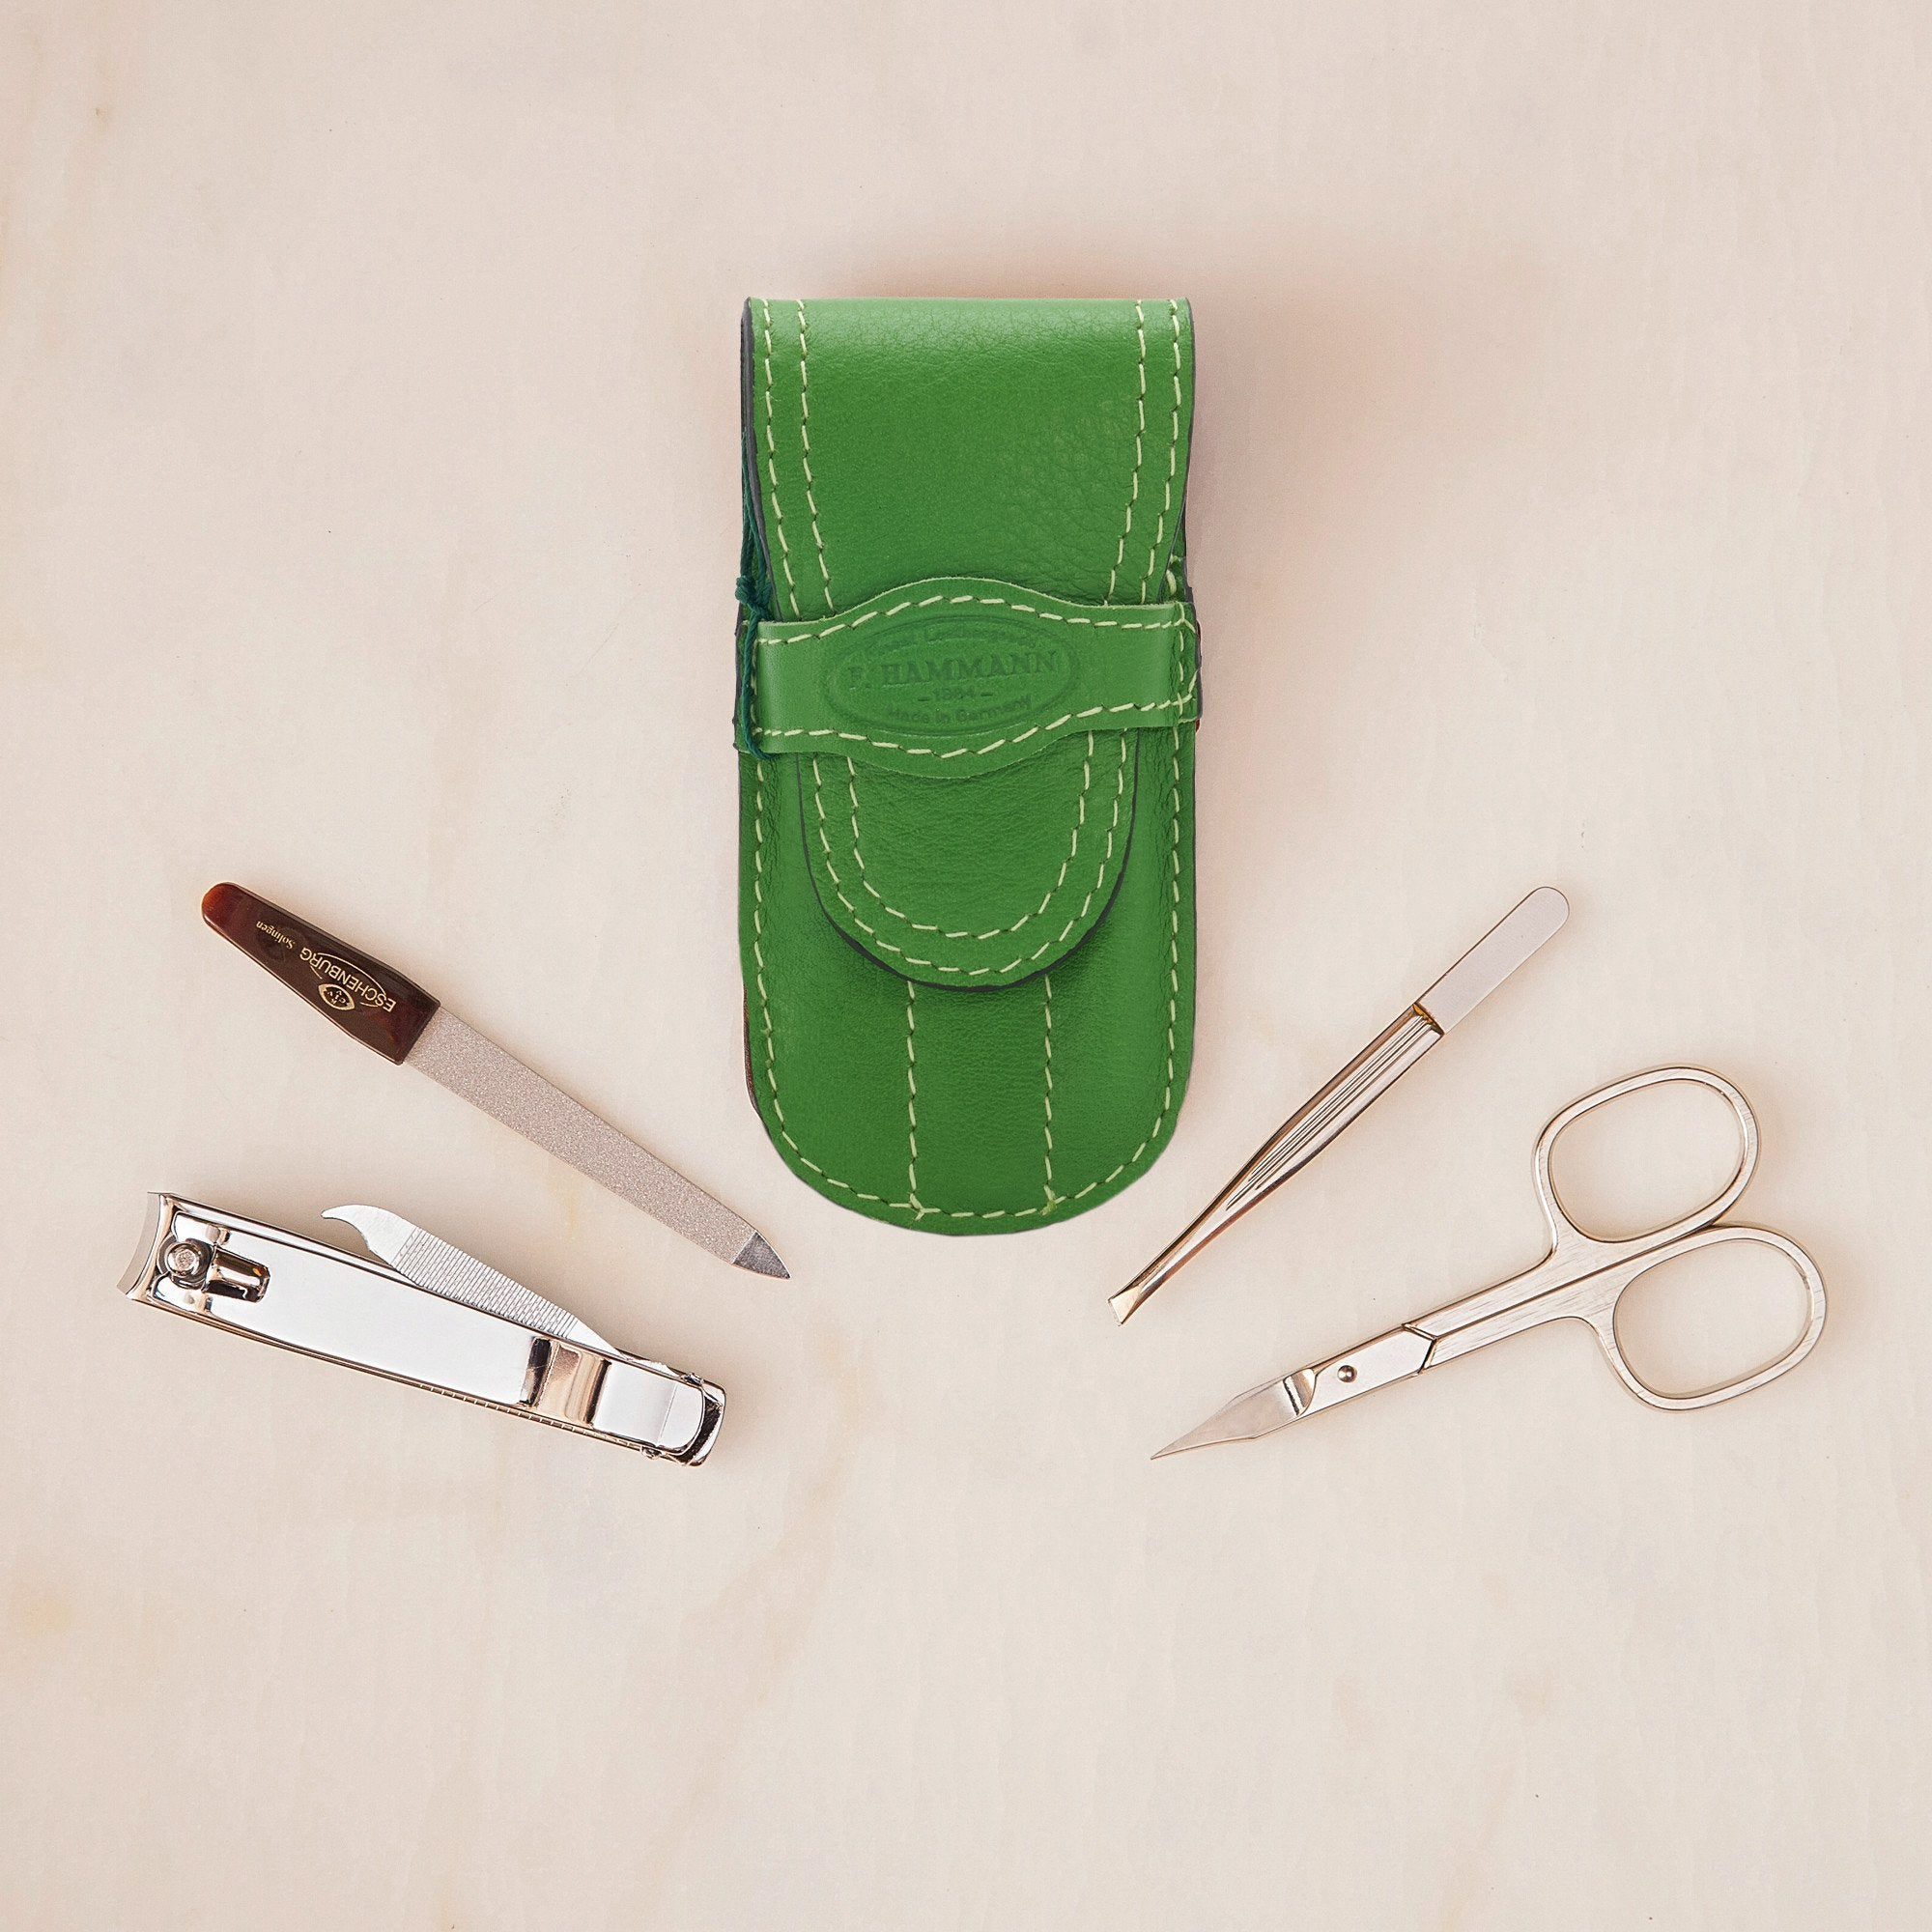 F. Hamman Manicure Kit in Green Leather